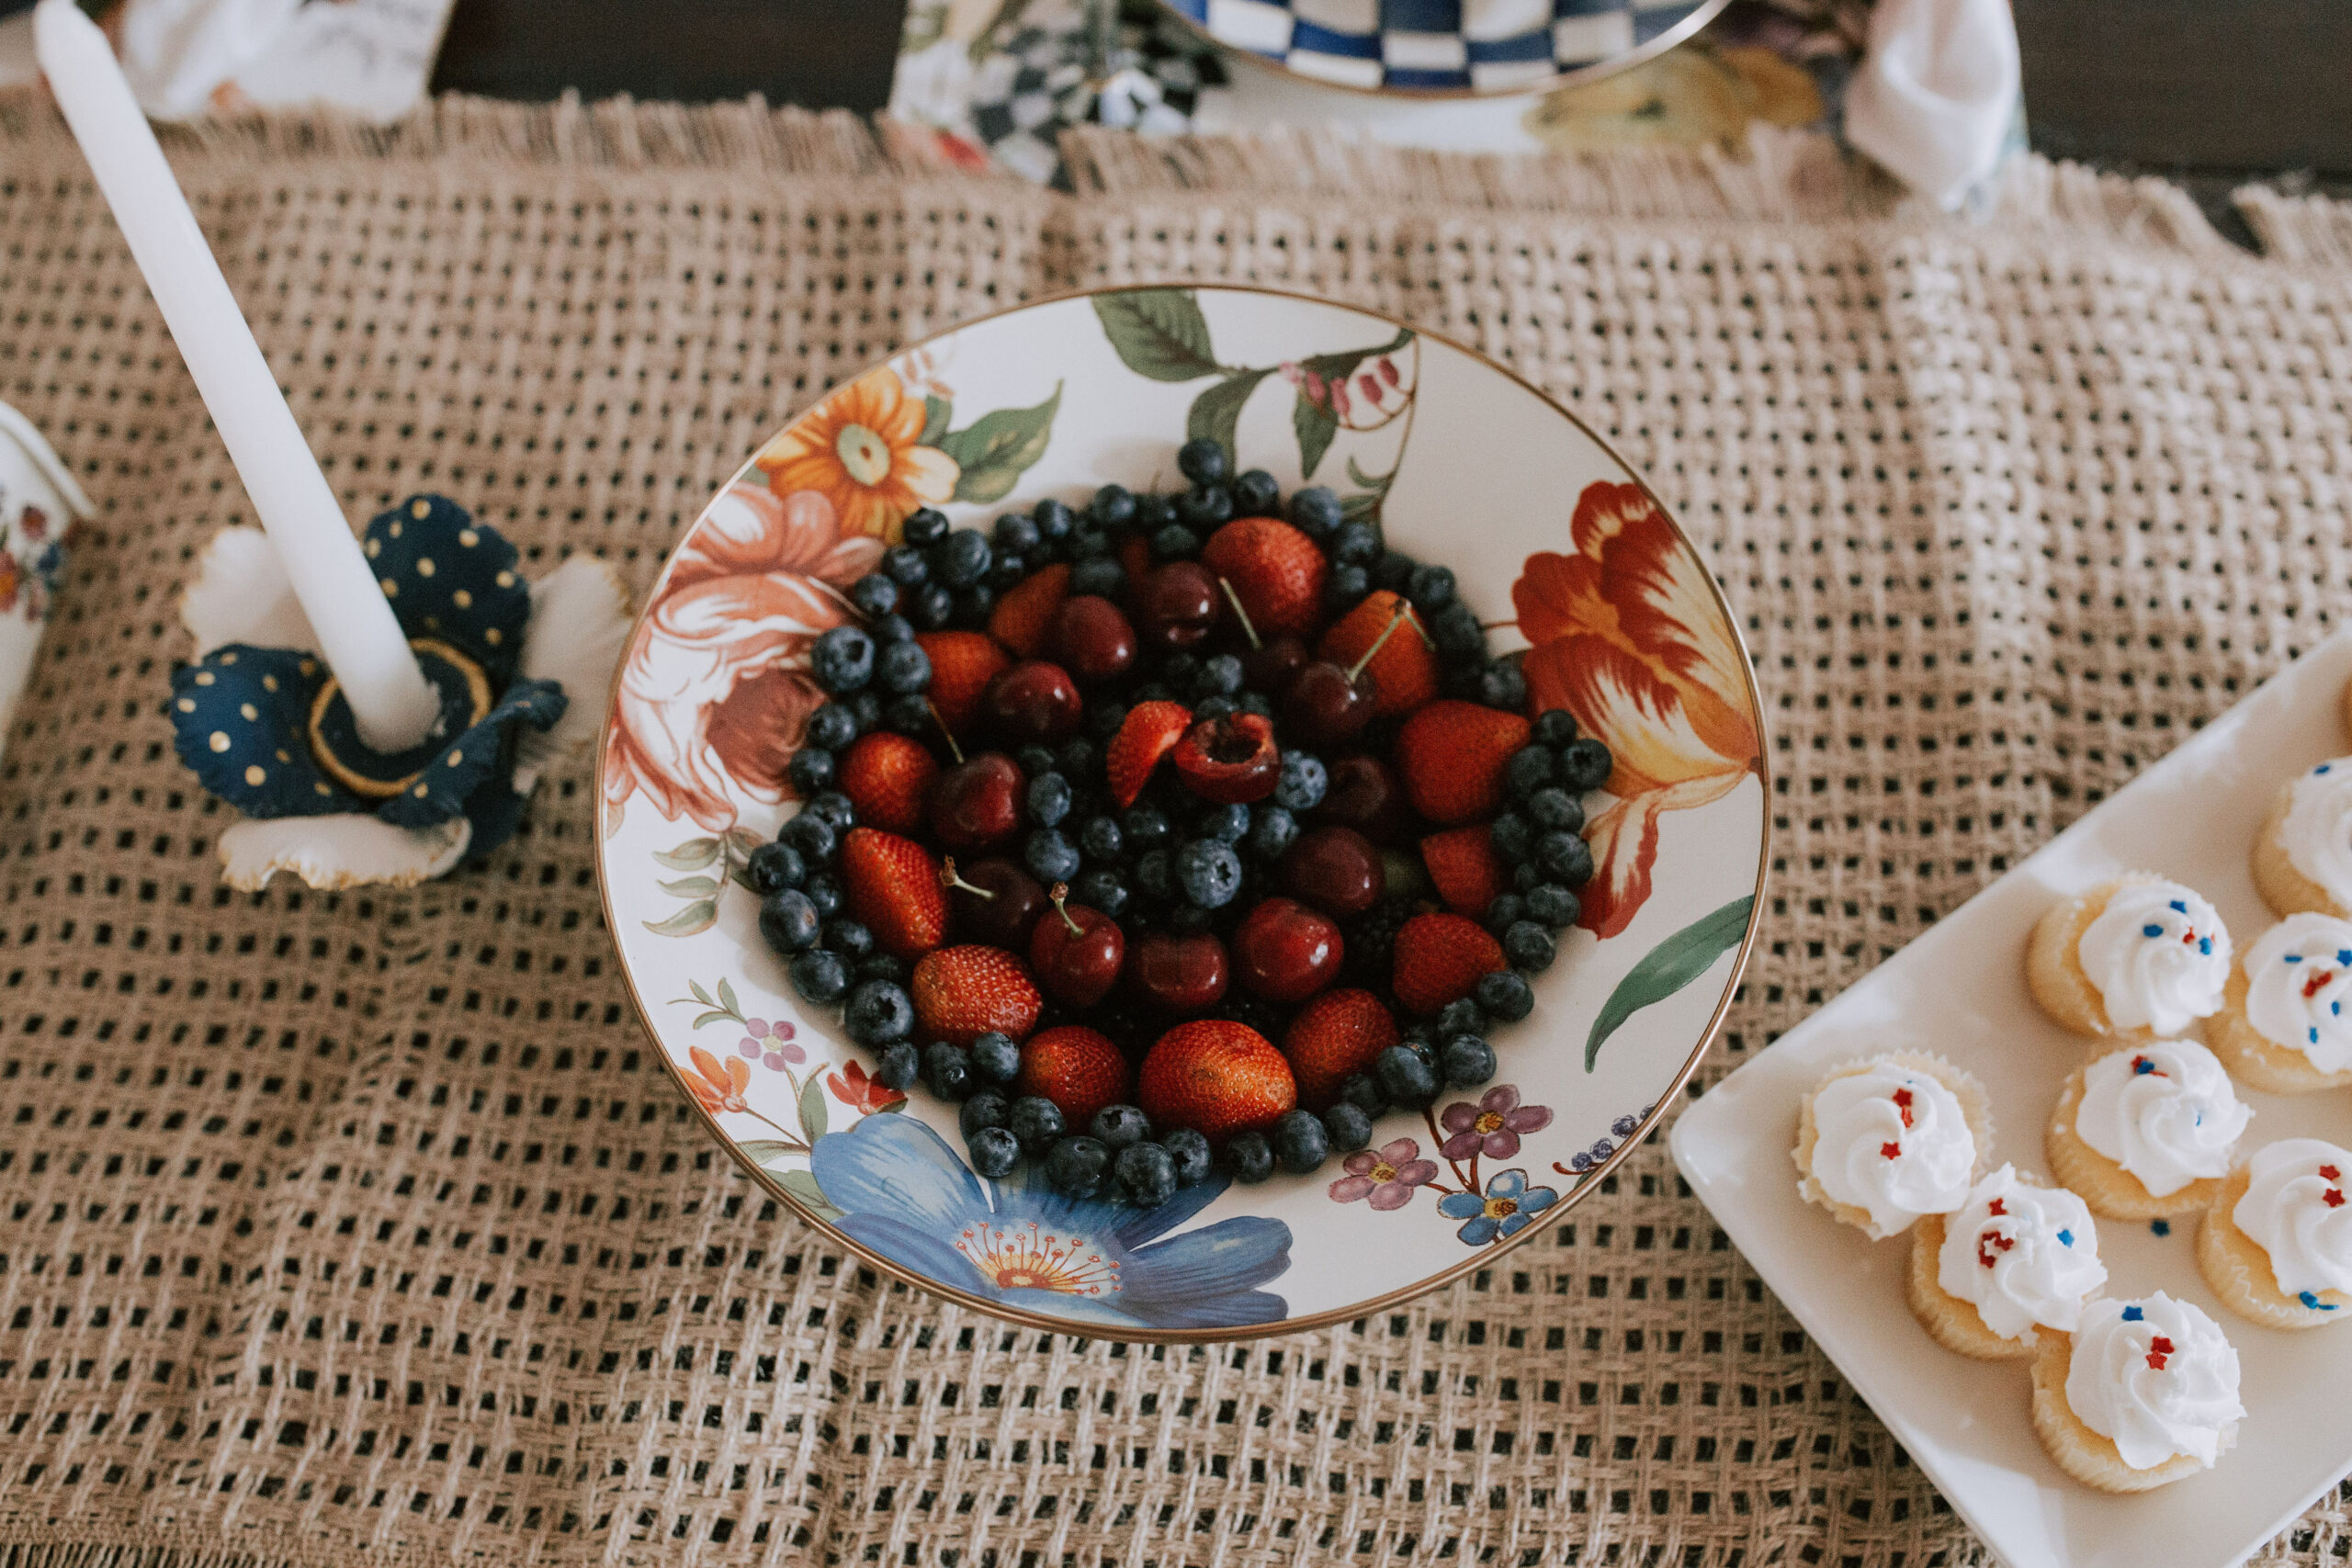 Ruthie Ridley Blog Summer Tablescape With Mackenzie-Childs